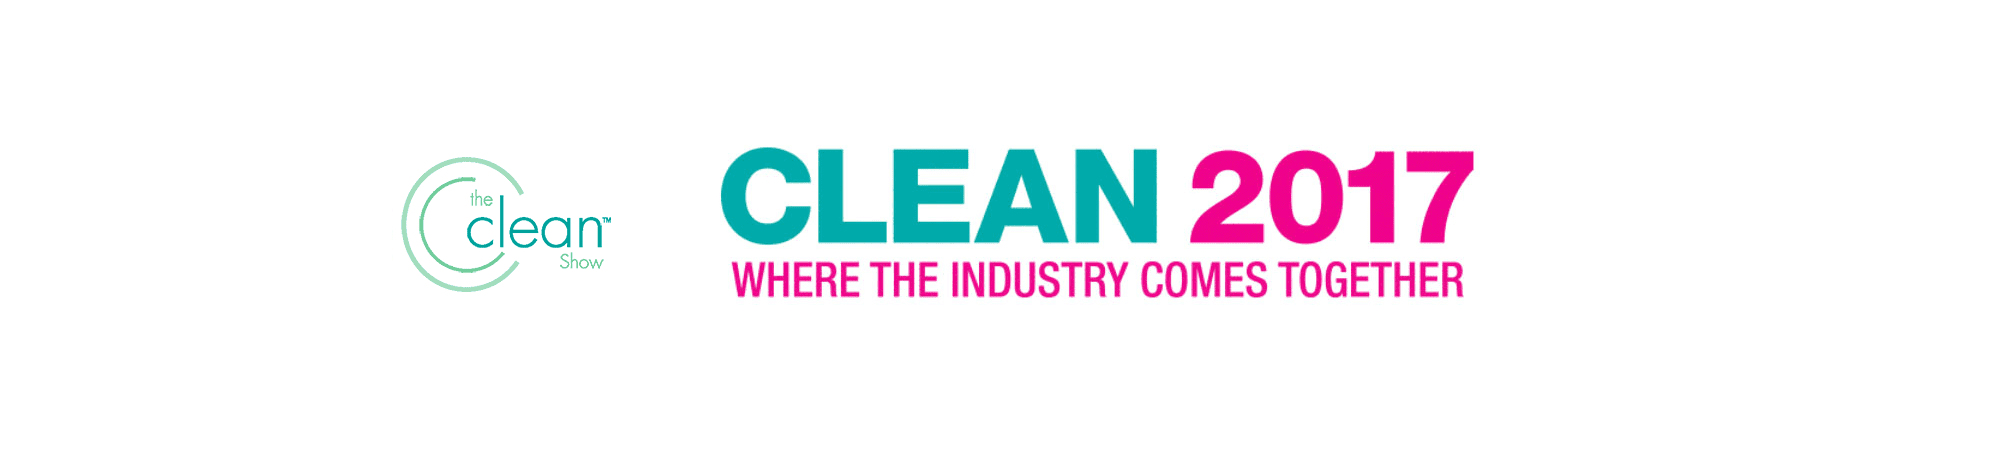 The Clean Show 2017 Las Vegas